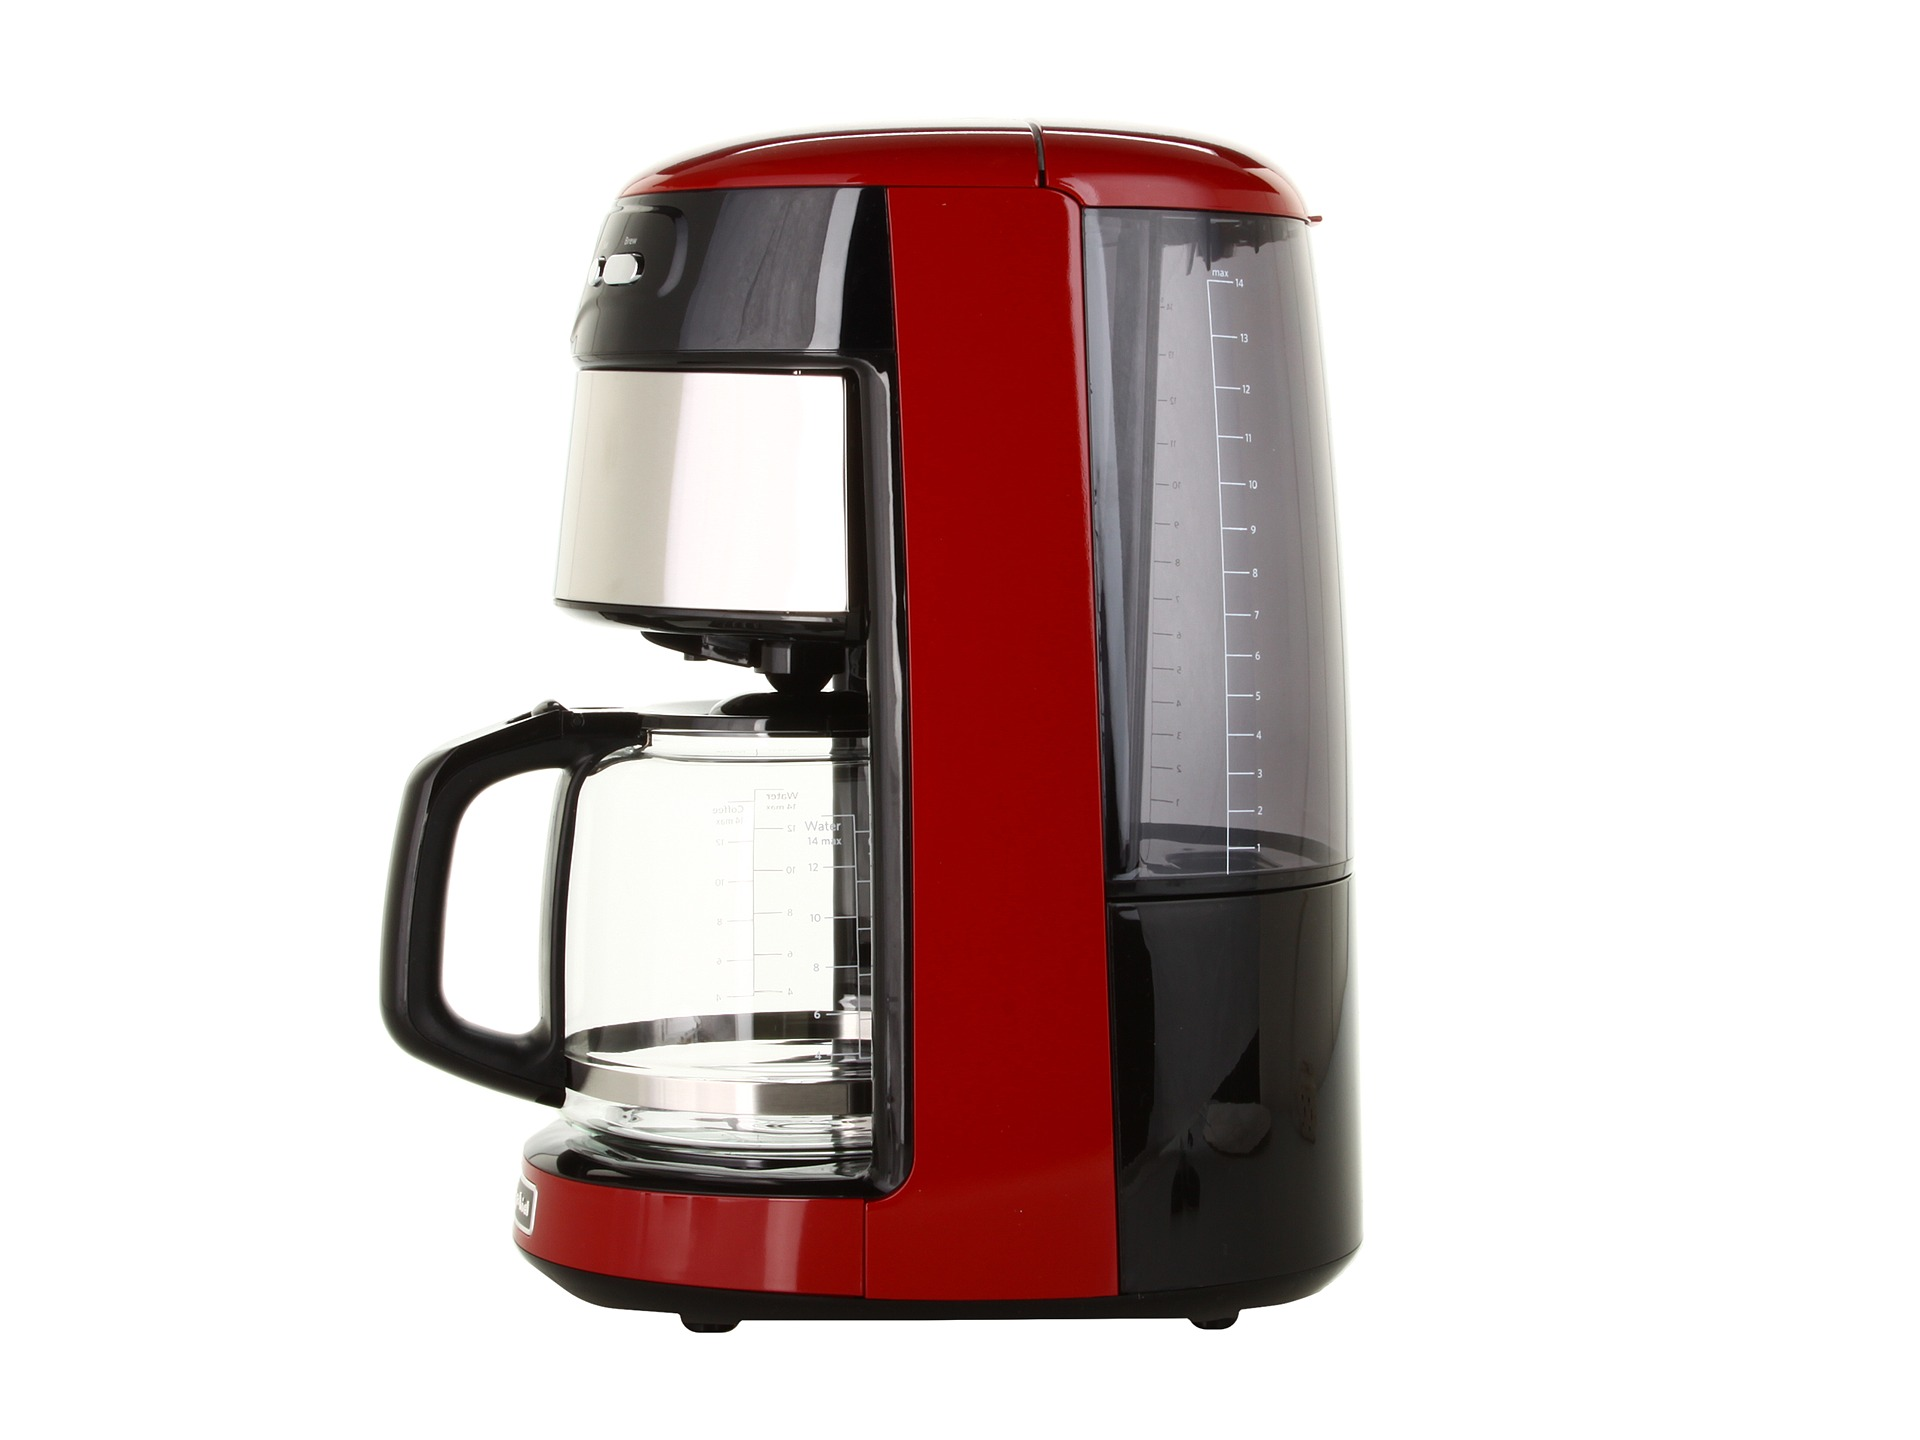 Kitchenaid Coffee Maker Operating Manual : Kitchenaid: Kitchenaid 14 Cup Coffee Maker